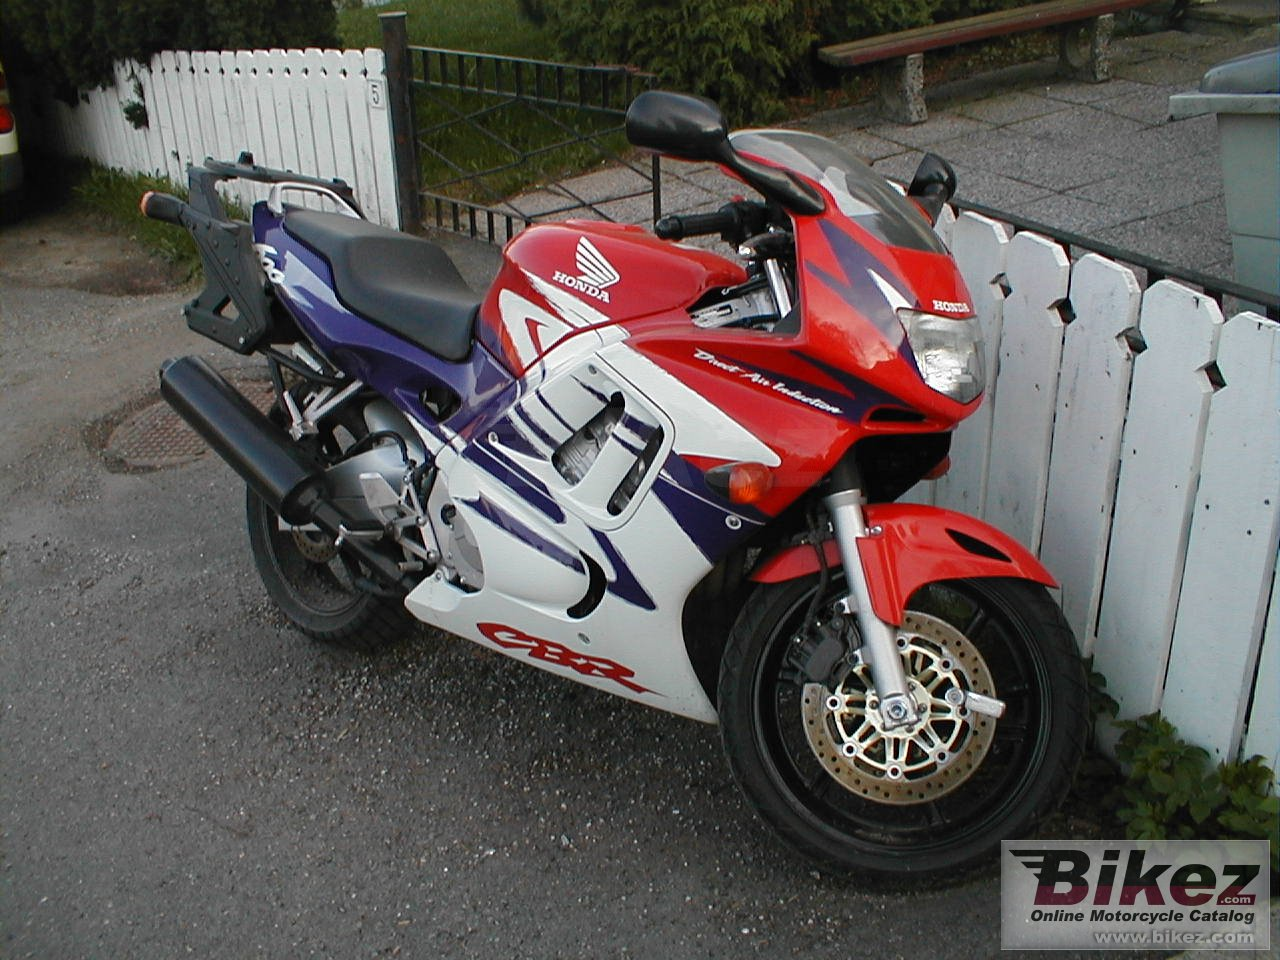 Big Harald Holm cbr 600 f picture and wallpaper from Bikez.com